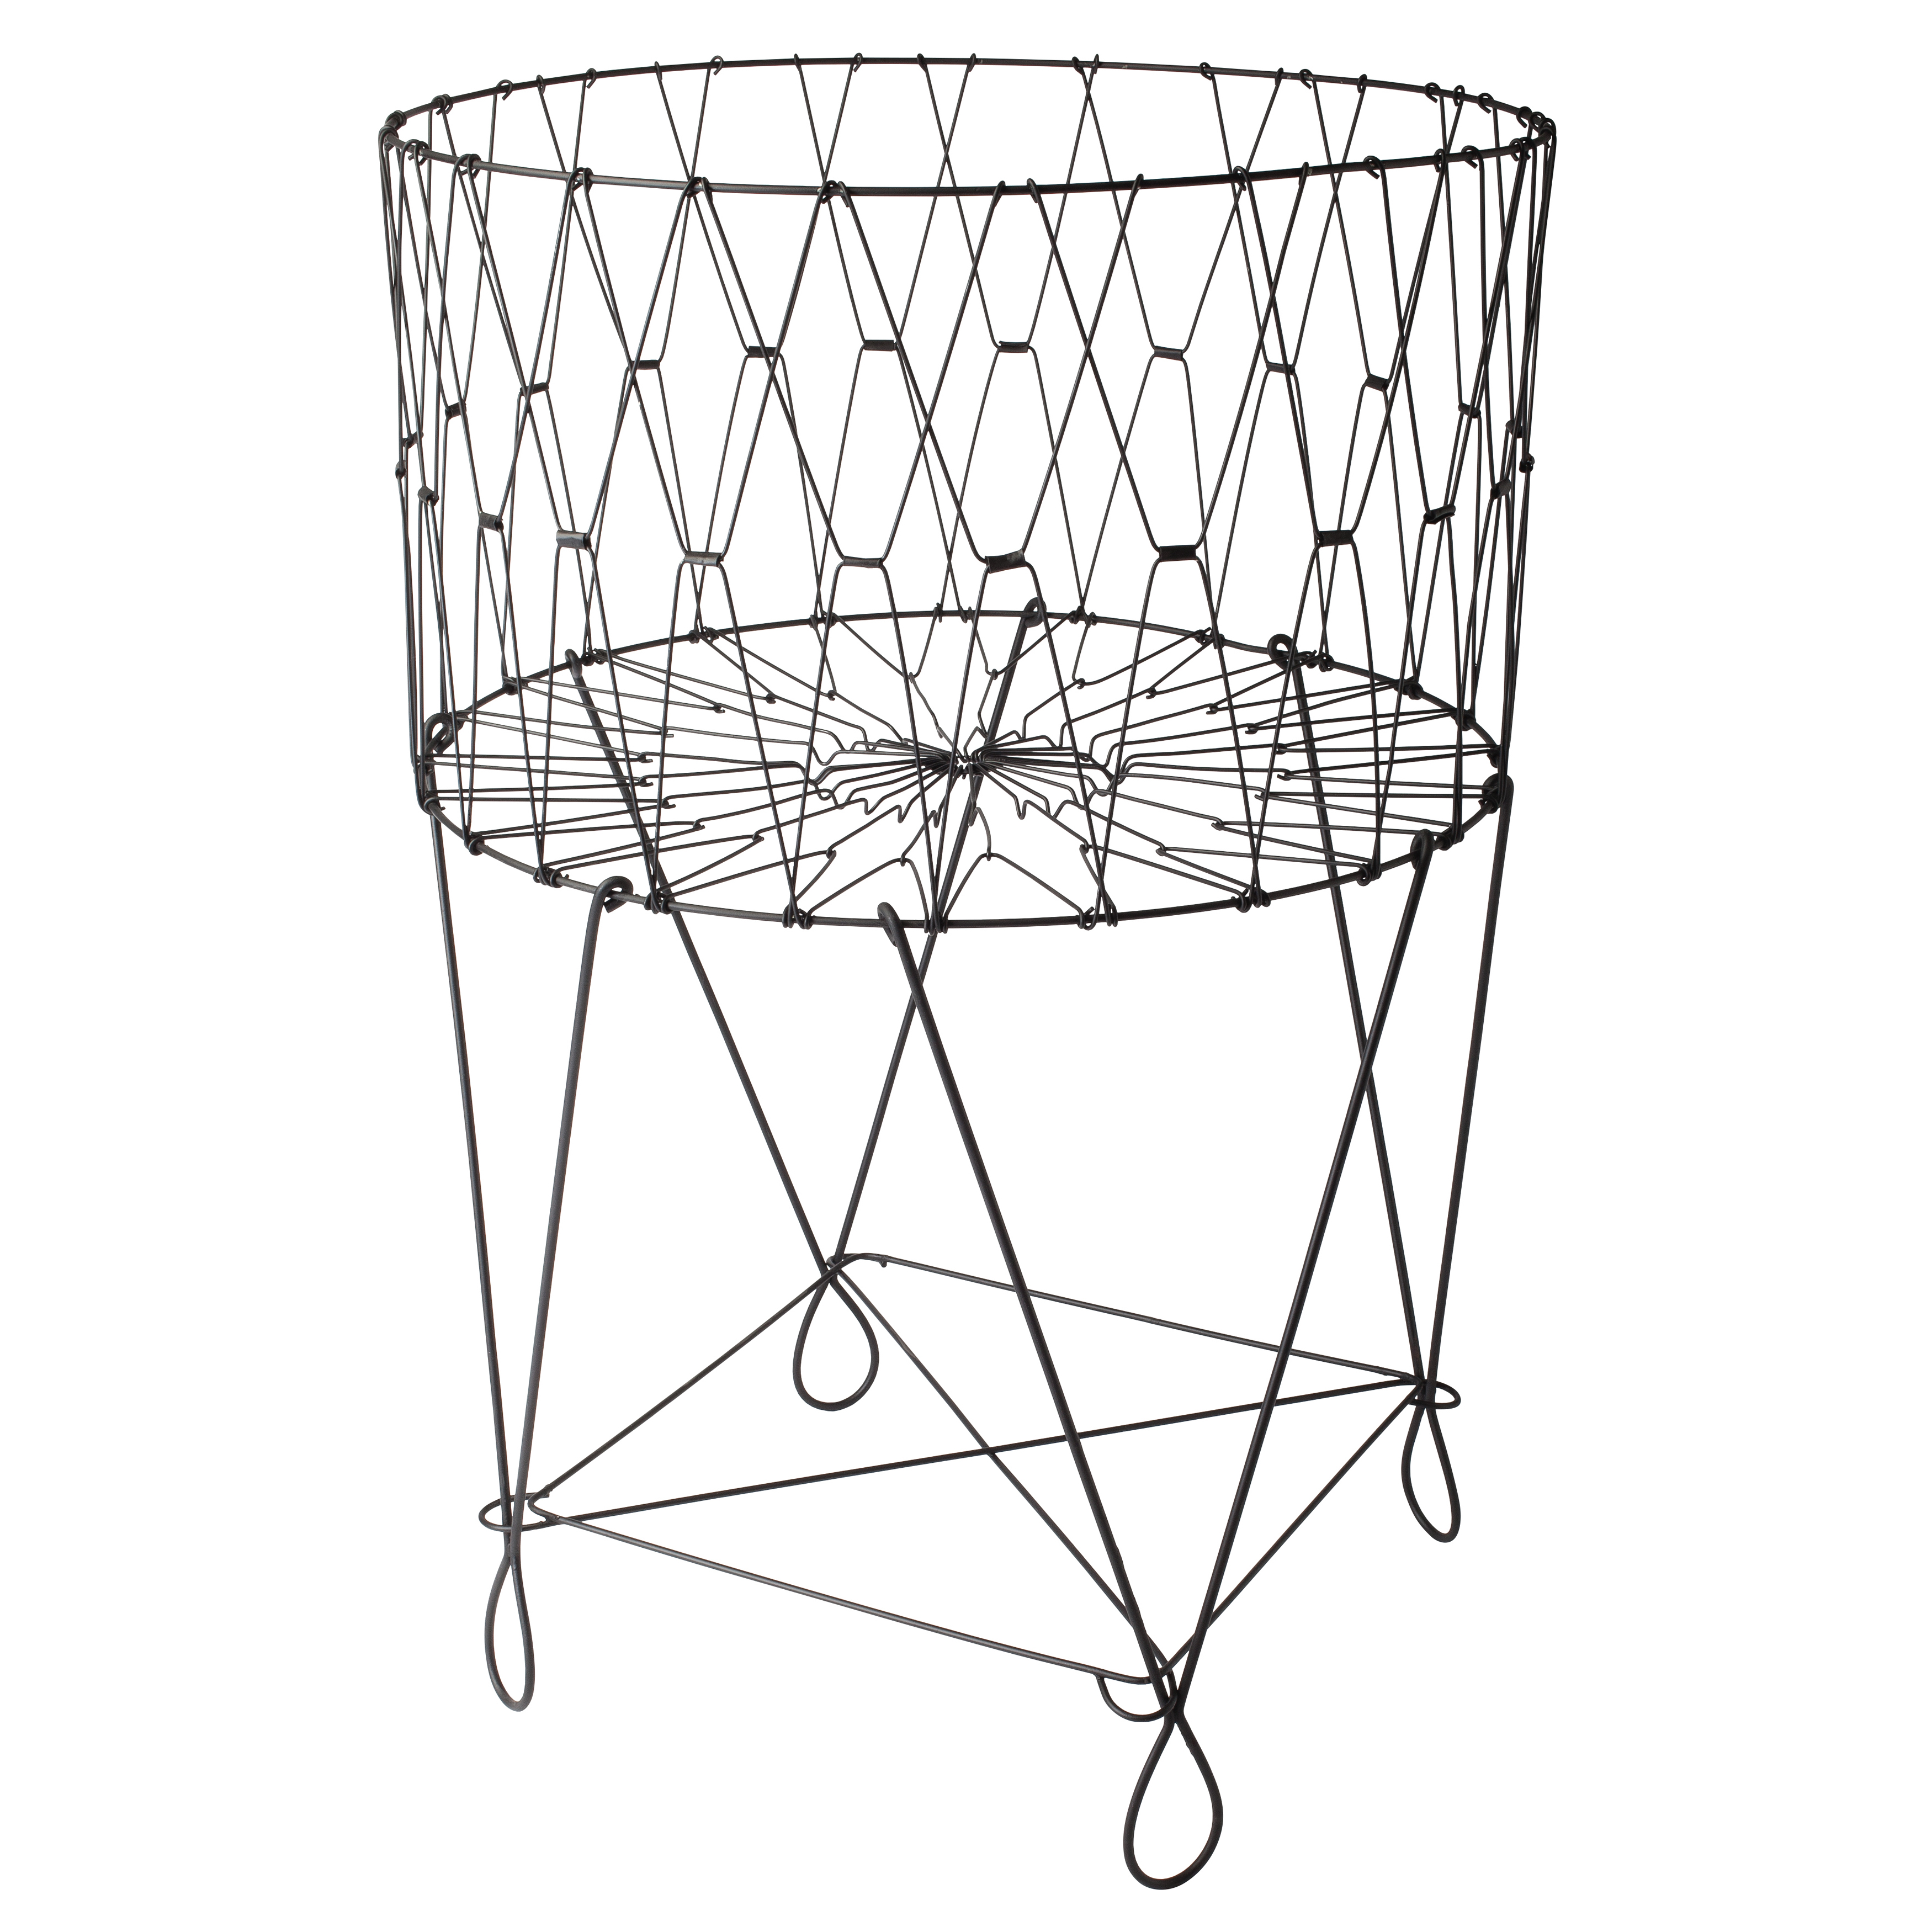 Laundry Basket Drawing At Getdrawings Com Free For